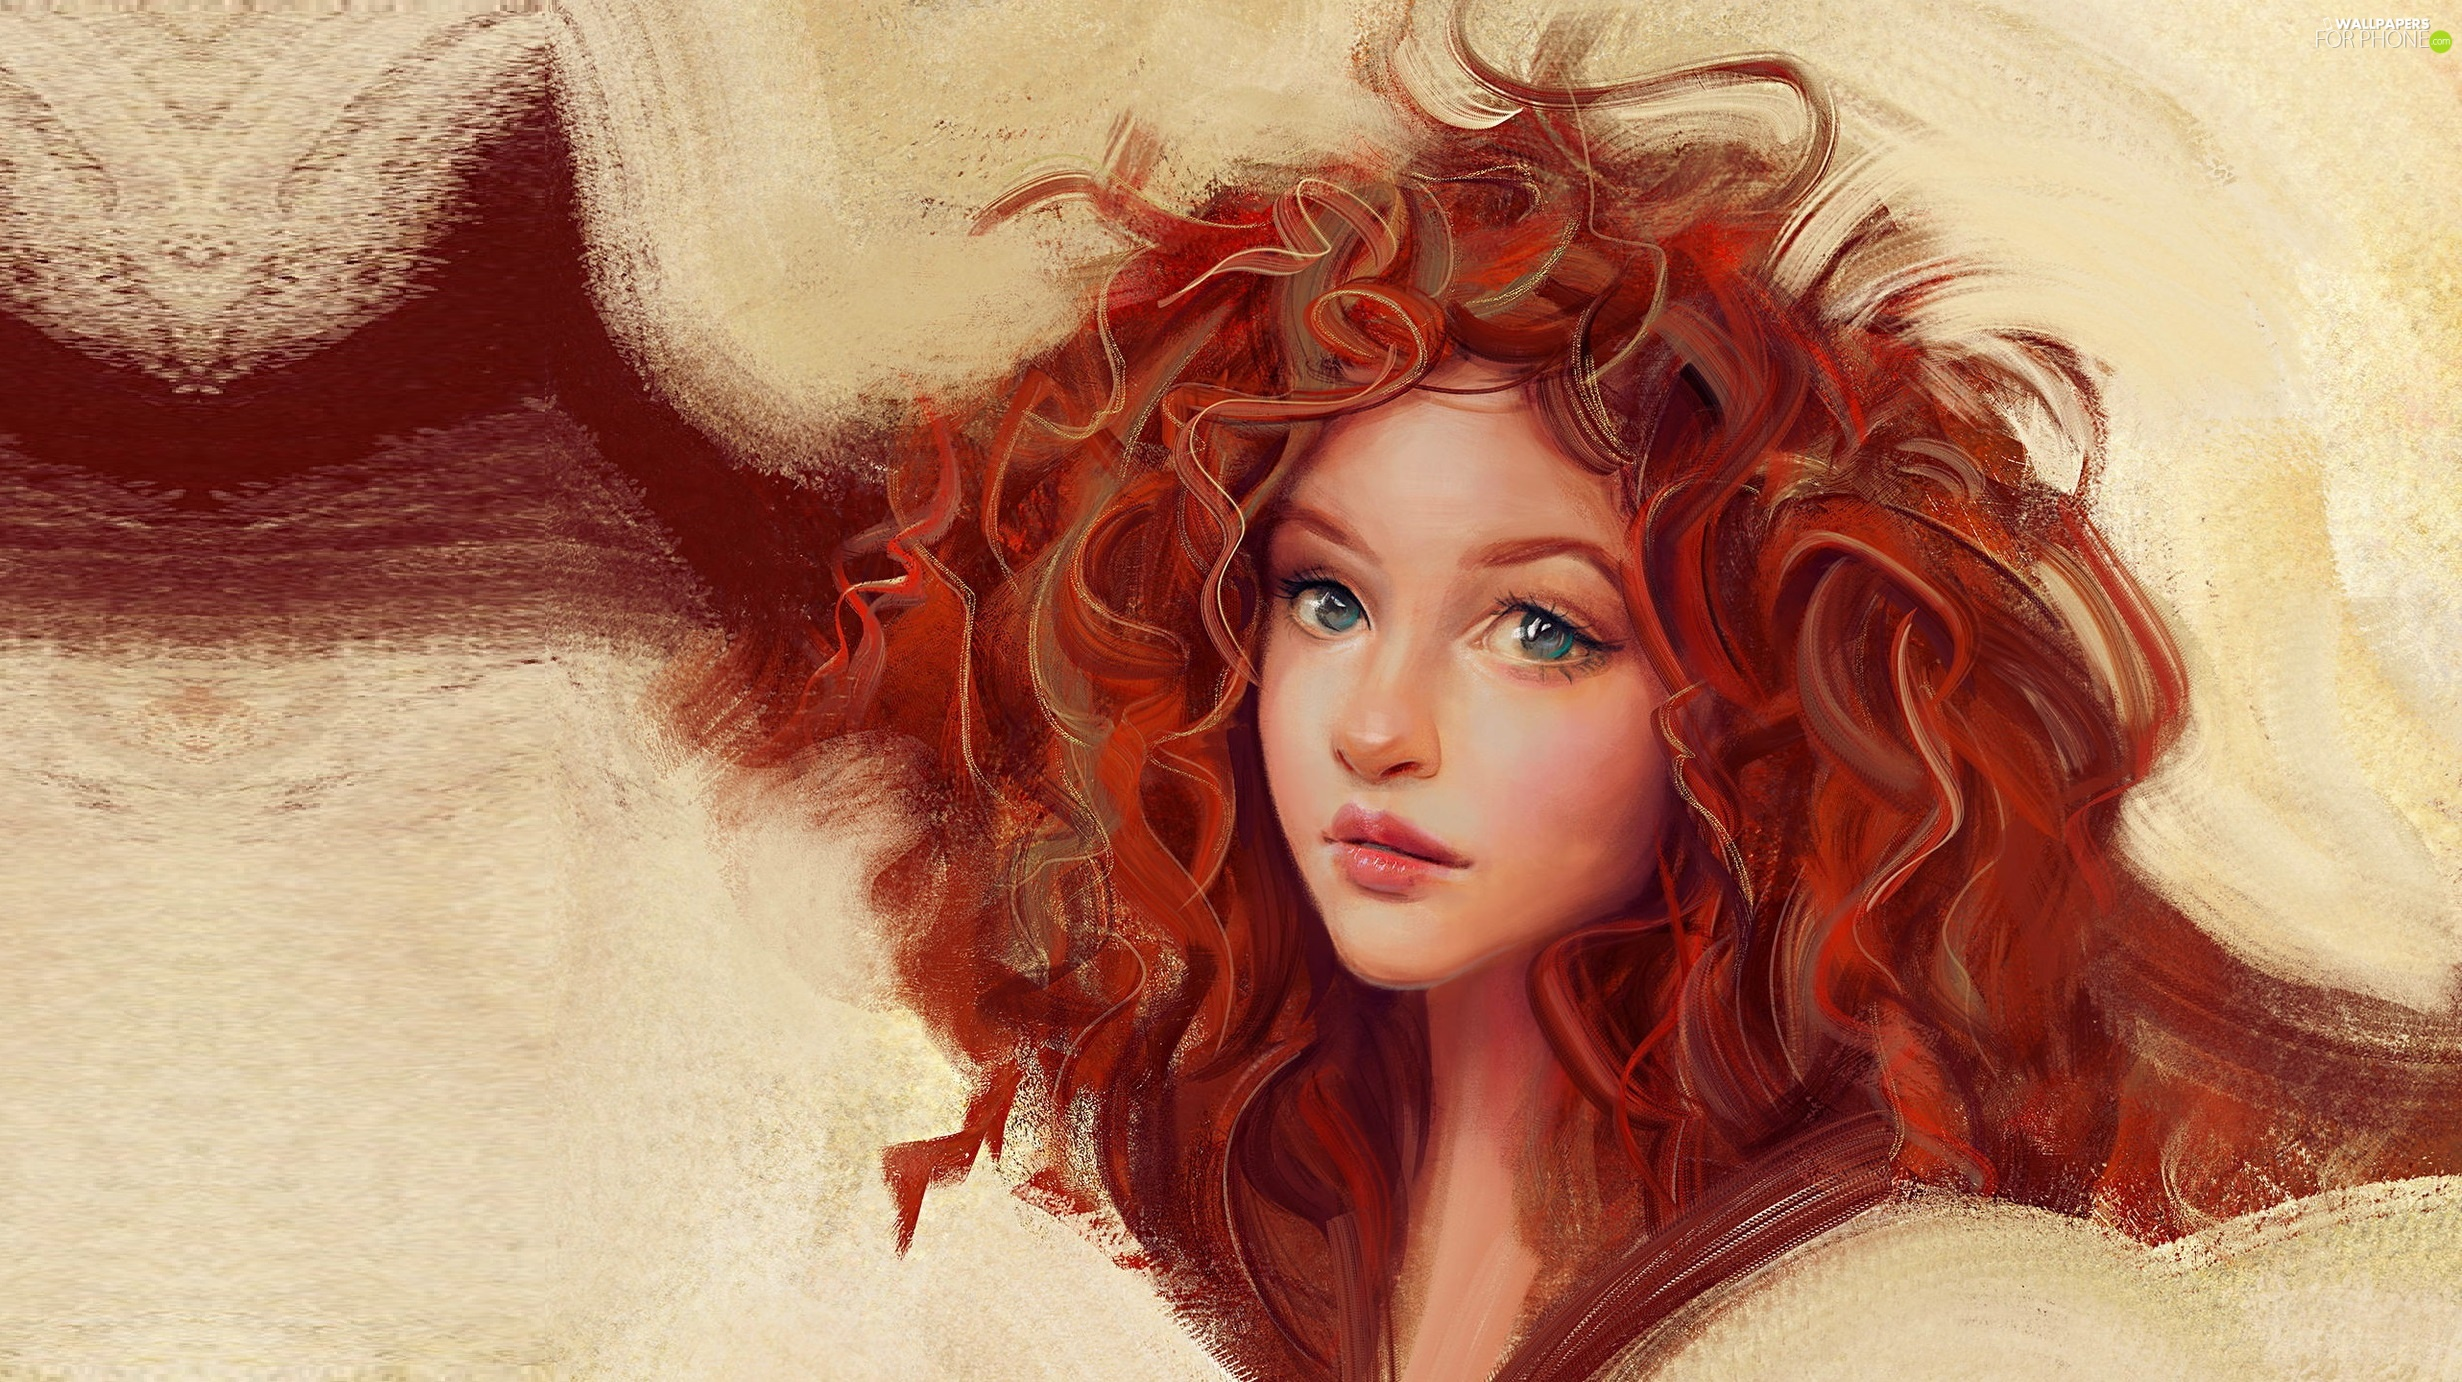 curls, graphics, girl, red head, Women